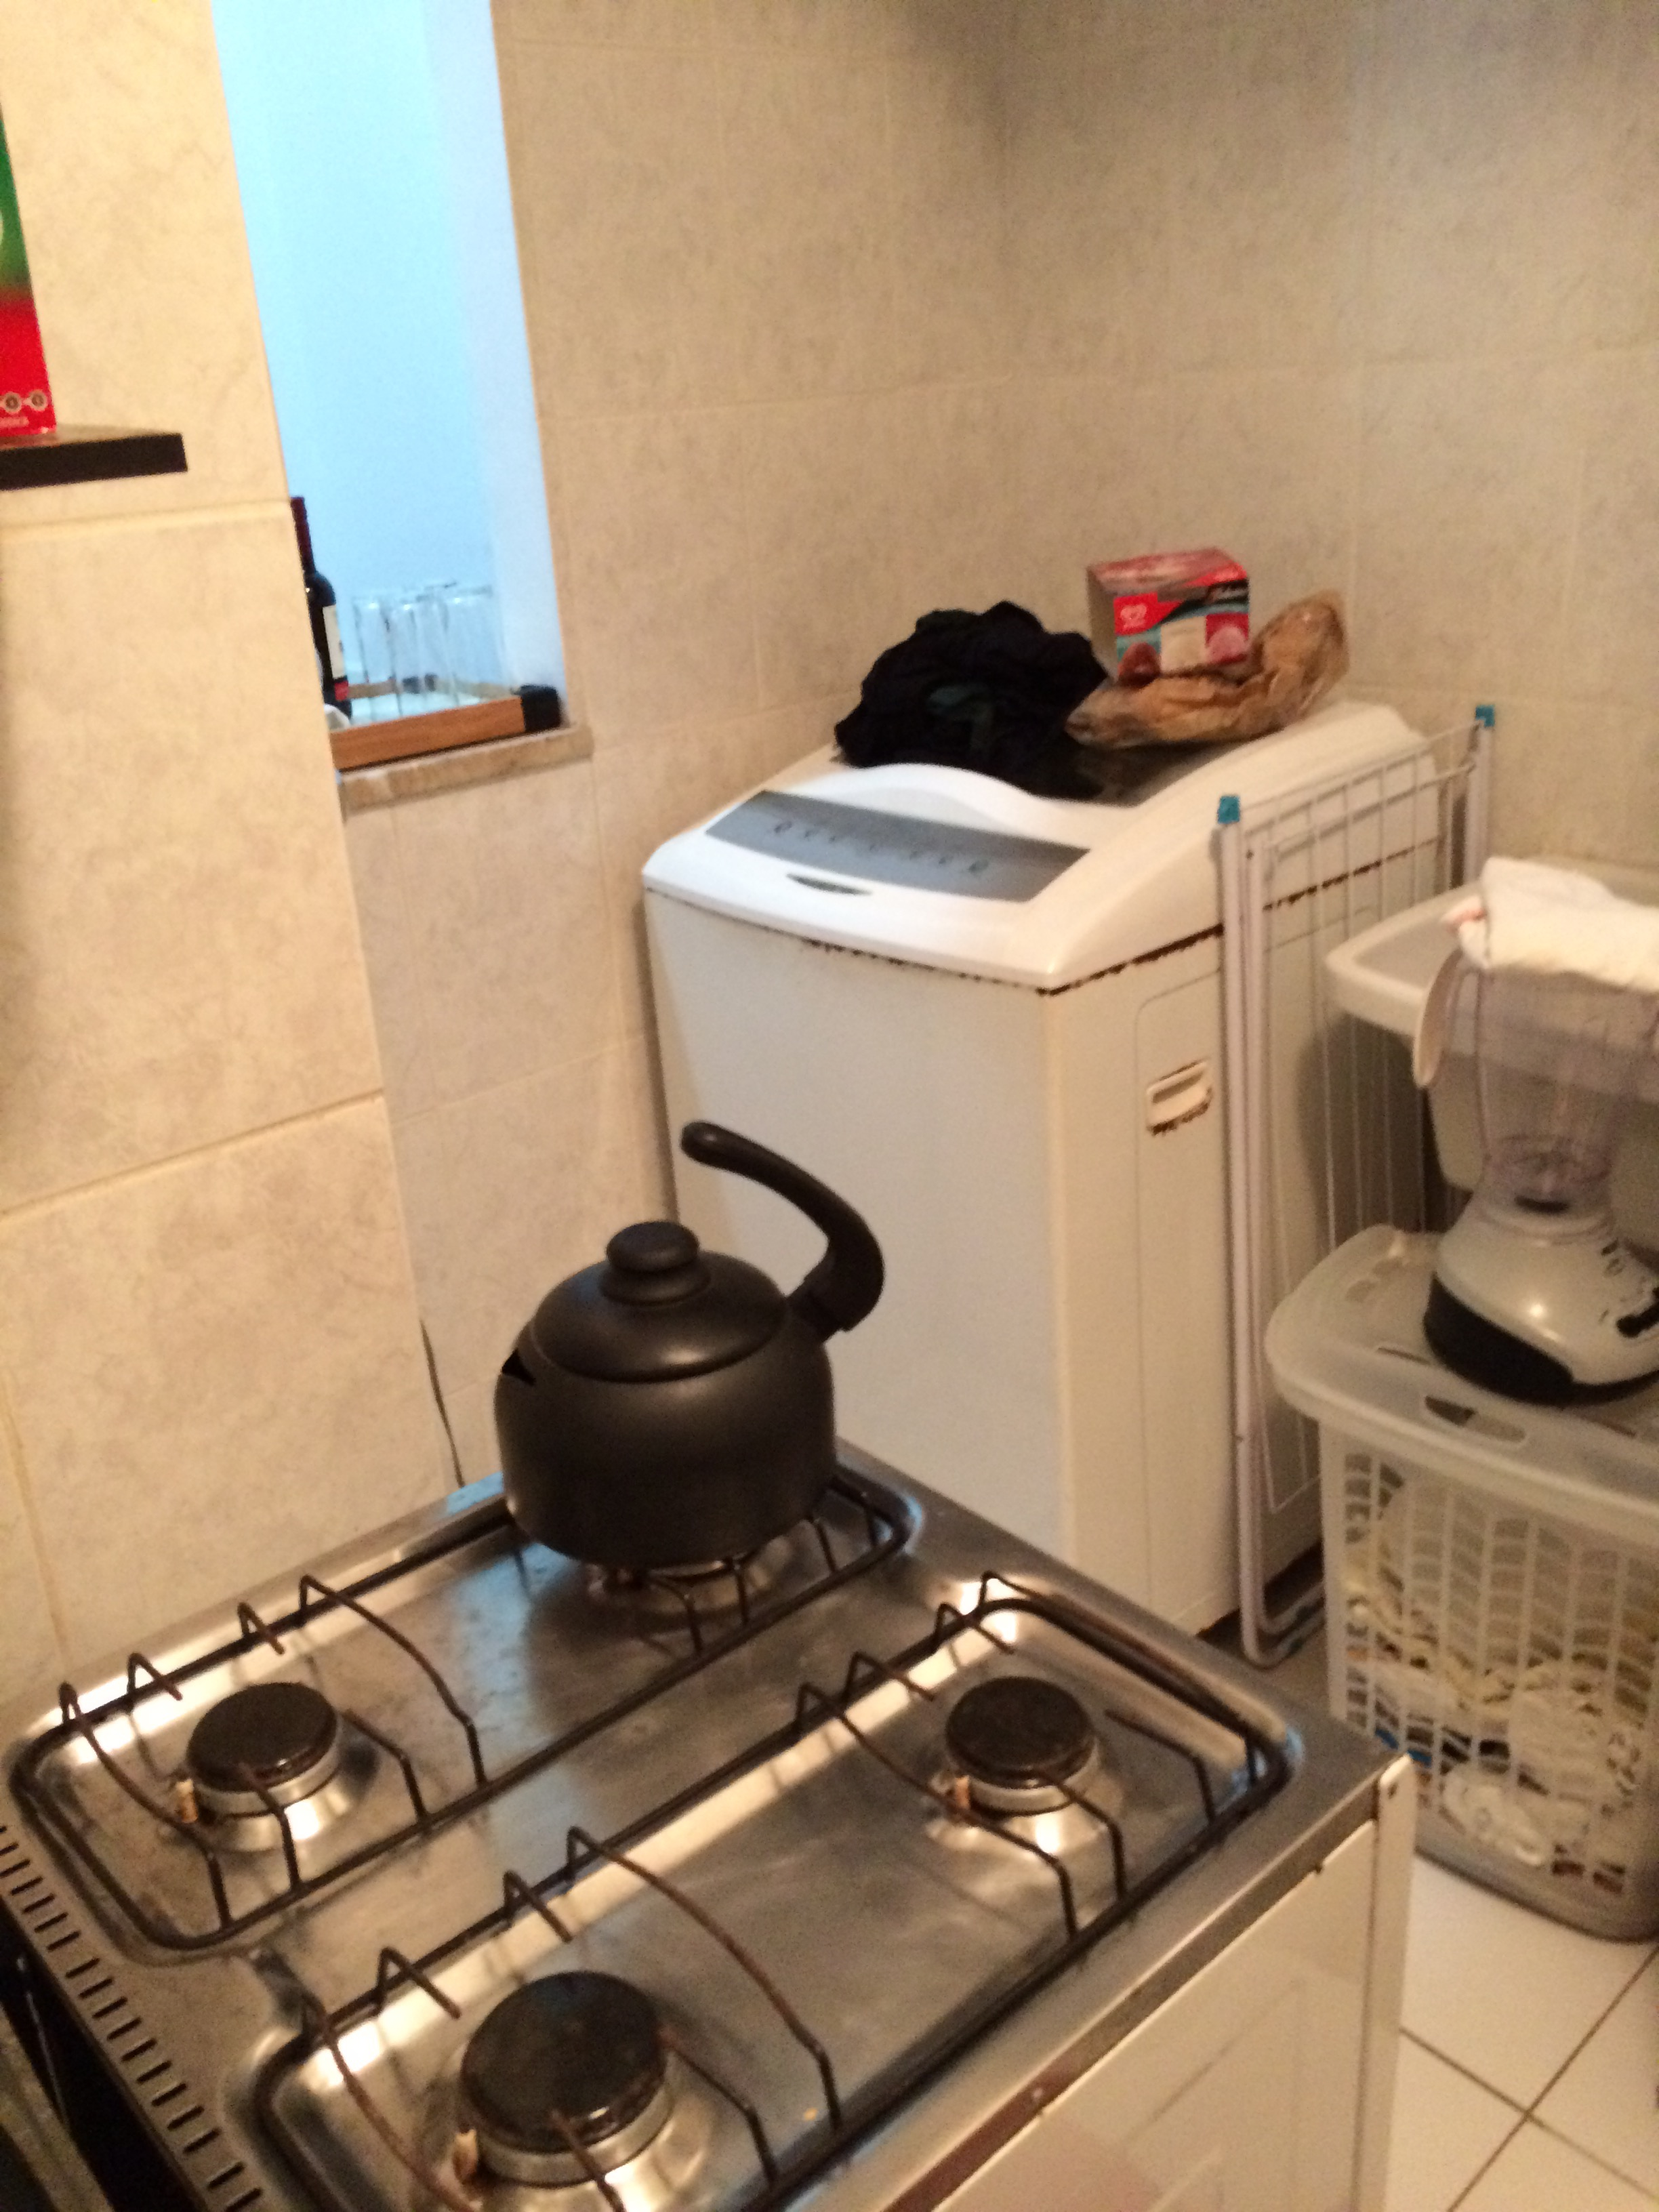 The kitchen, stove with no lid now